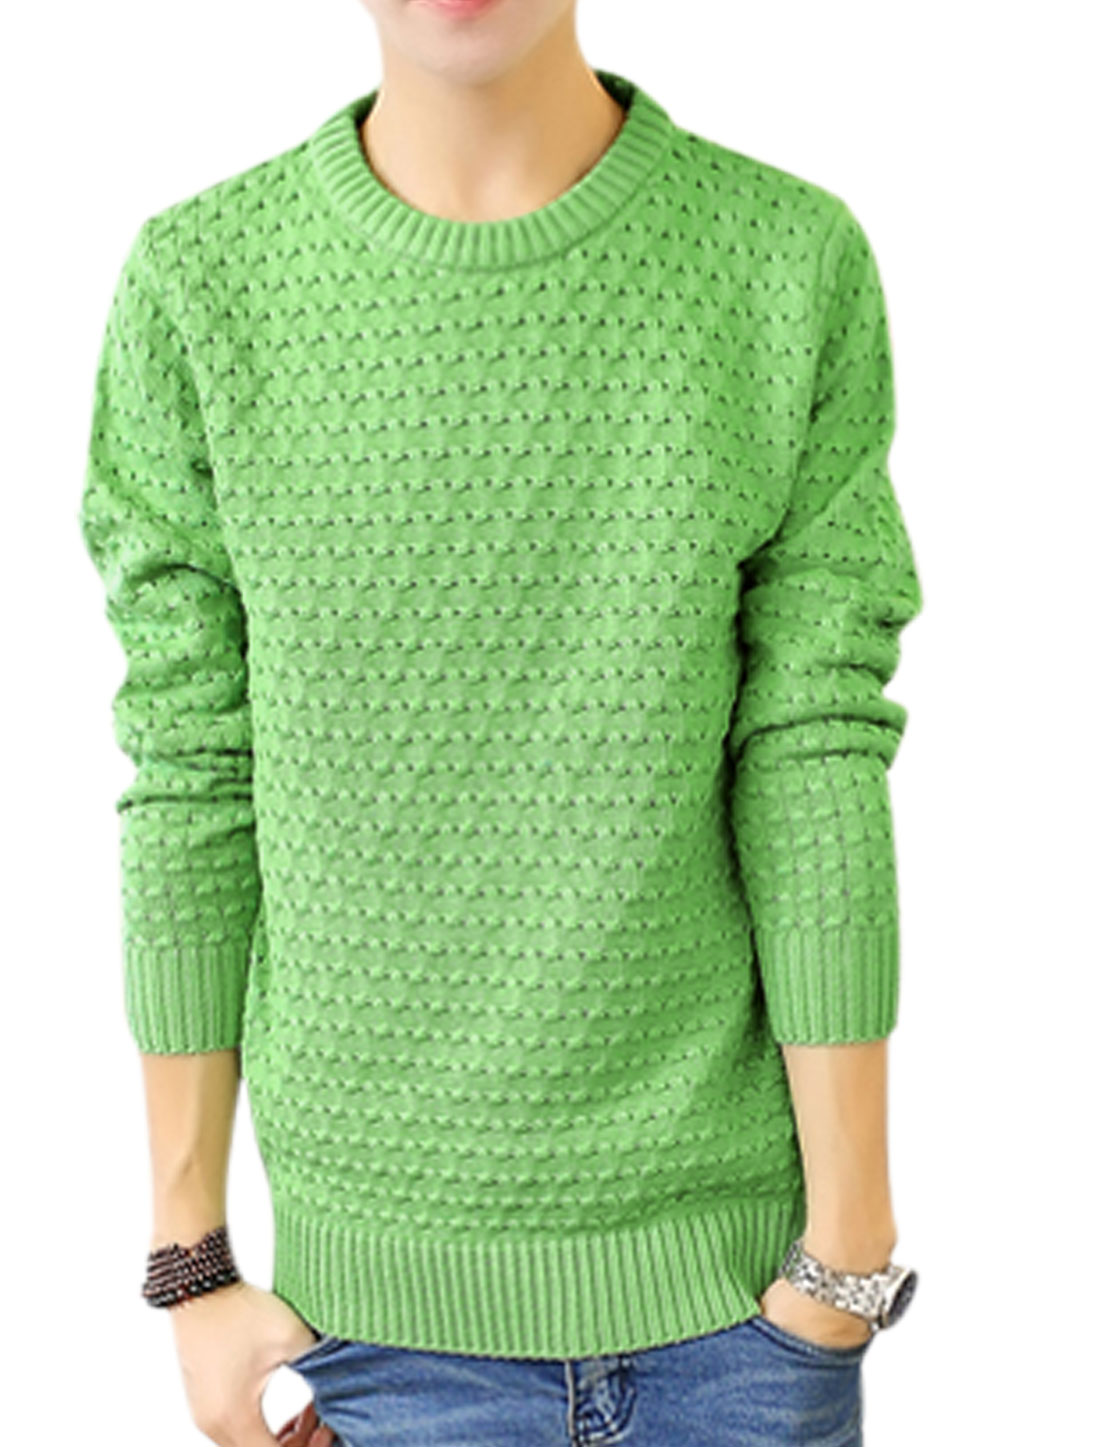 Slipover Crew Neck Long Sleeves Green Sweater for Man S